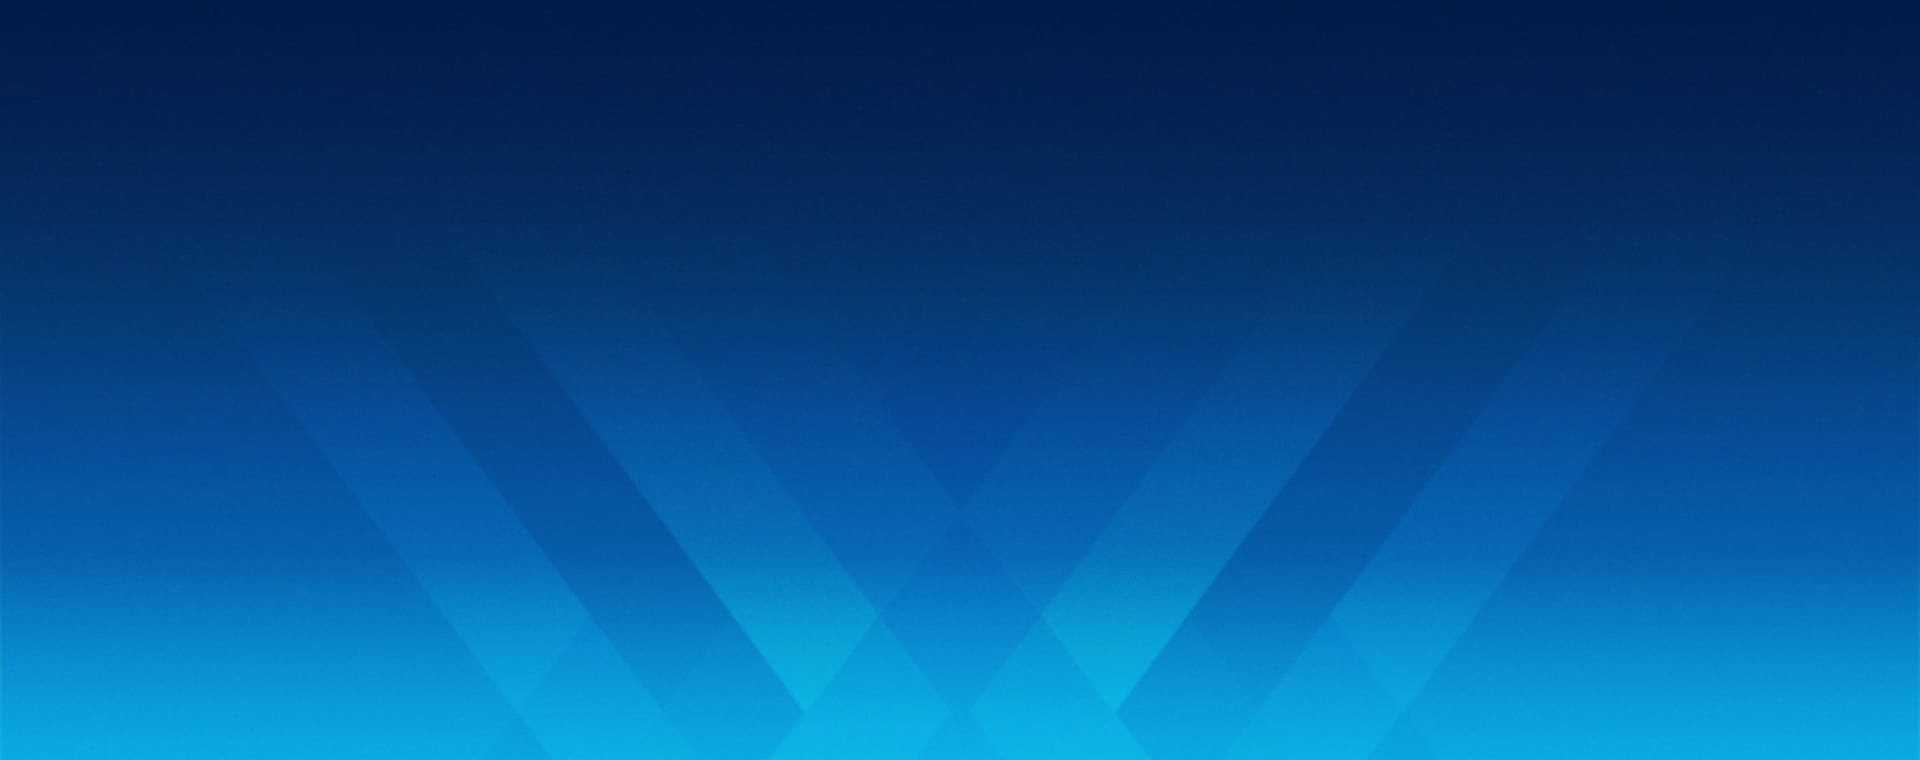 Patterned blue background with a dark to light blue horizontal gradient